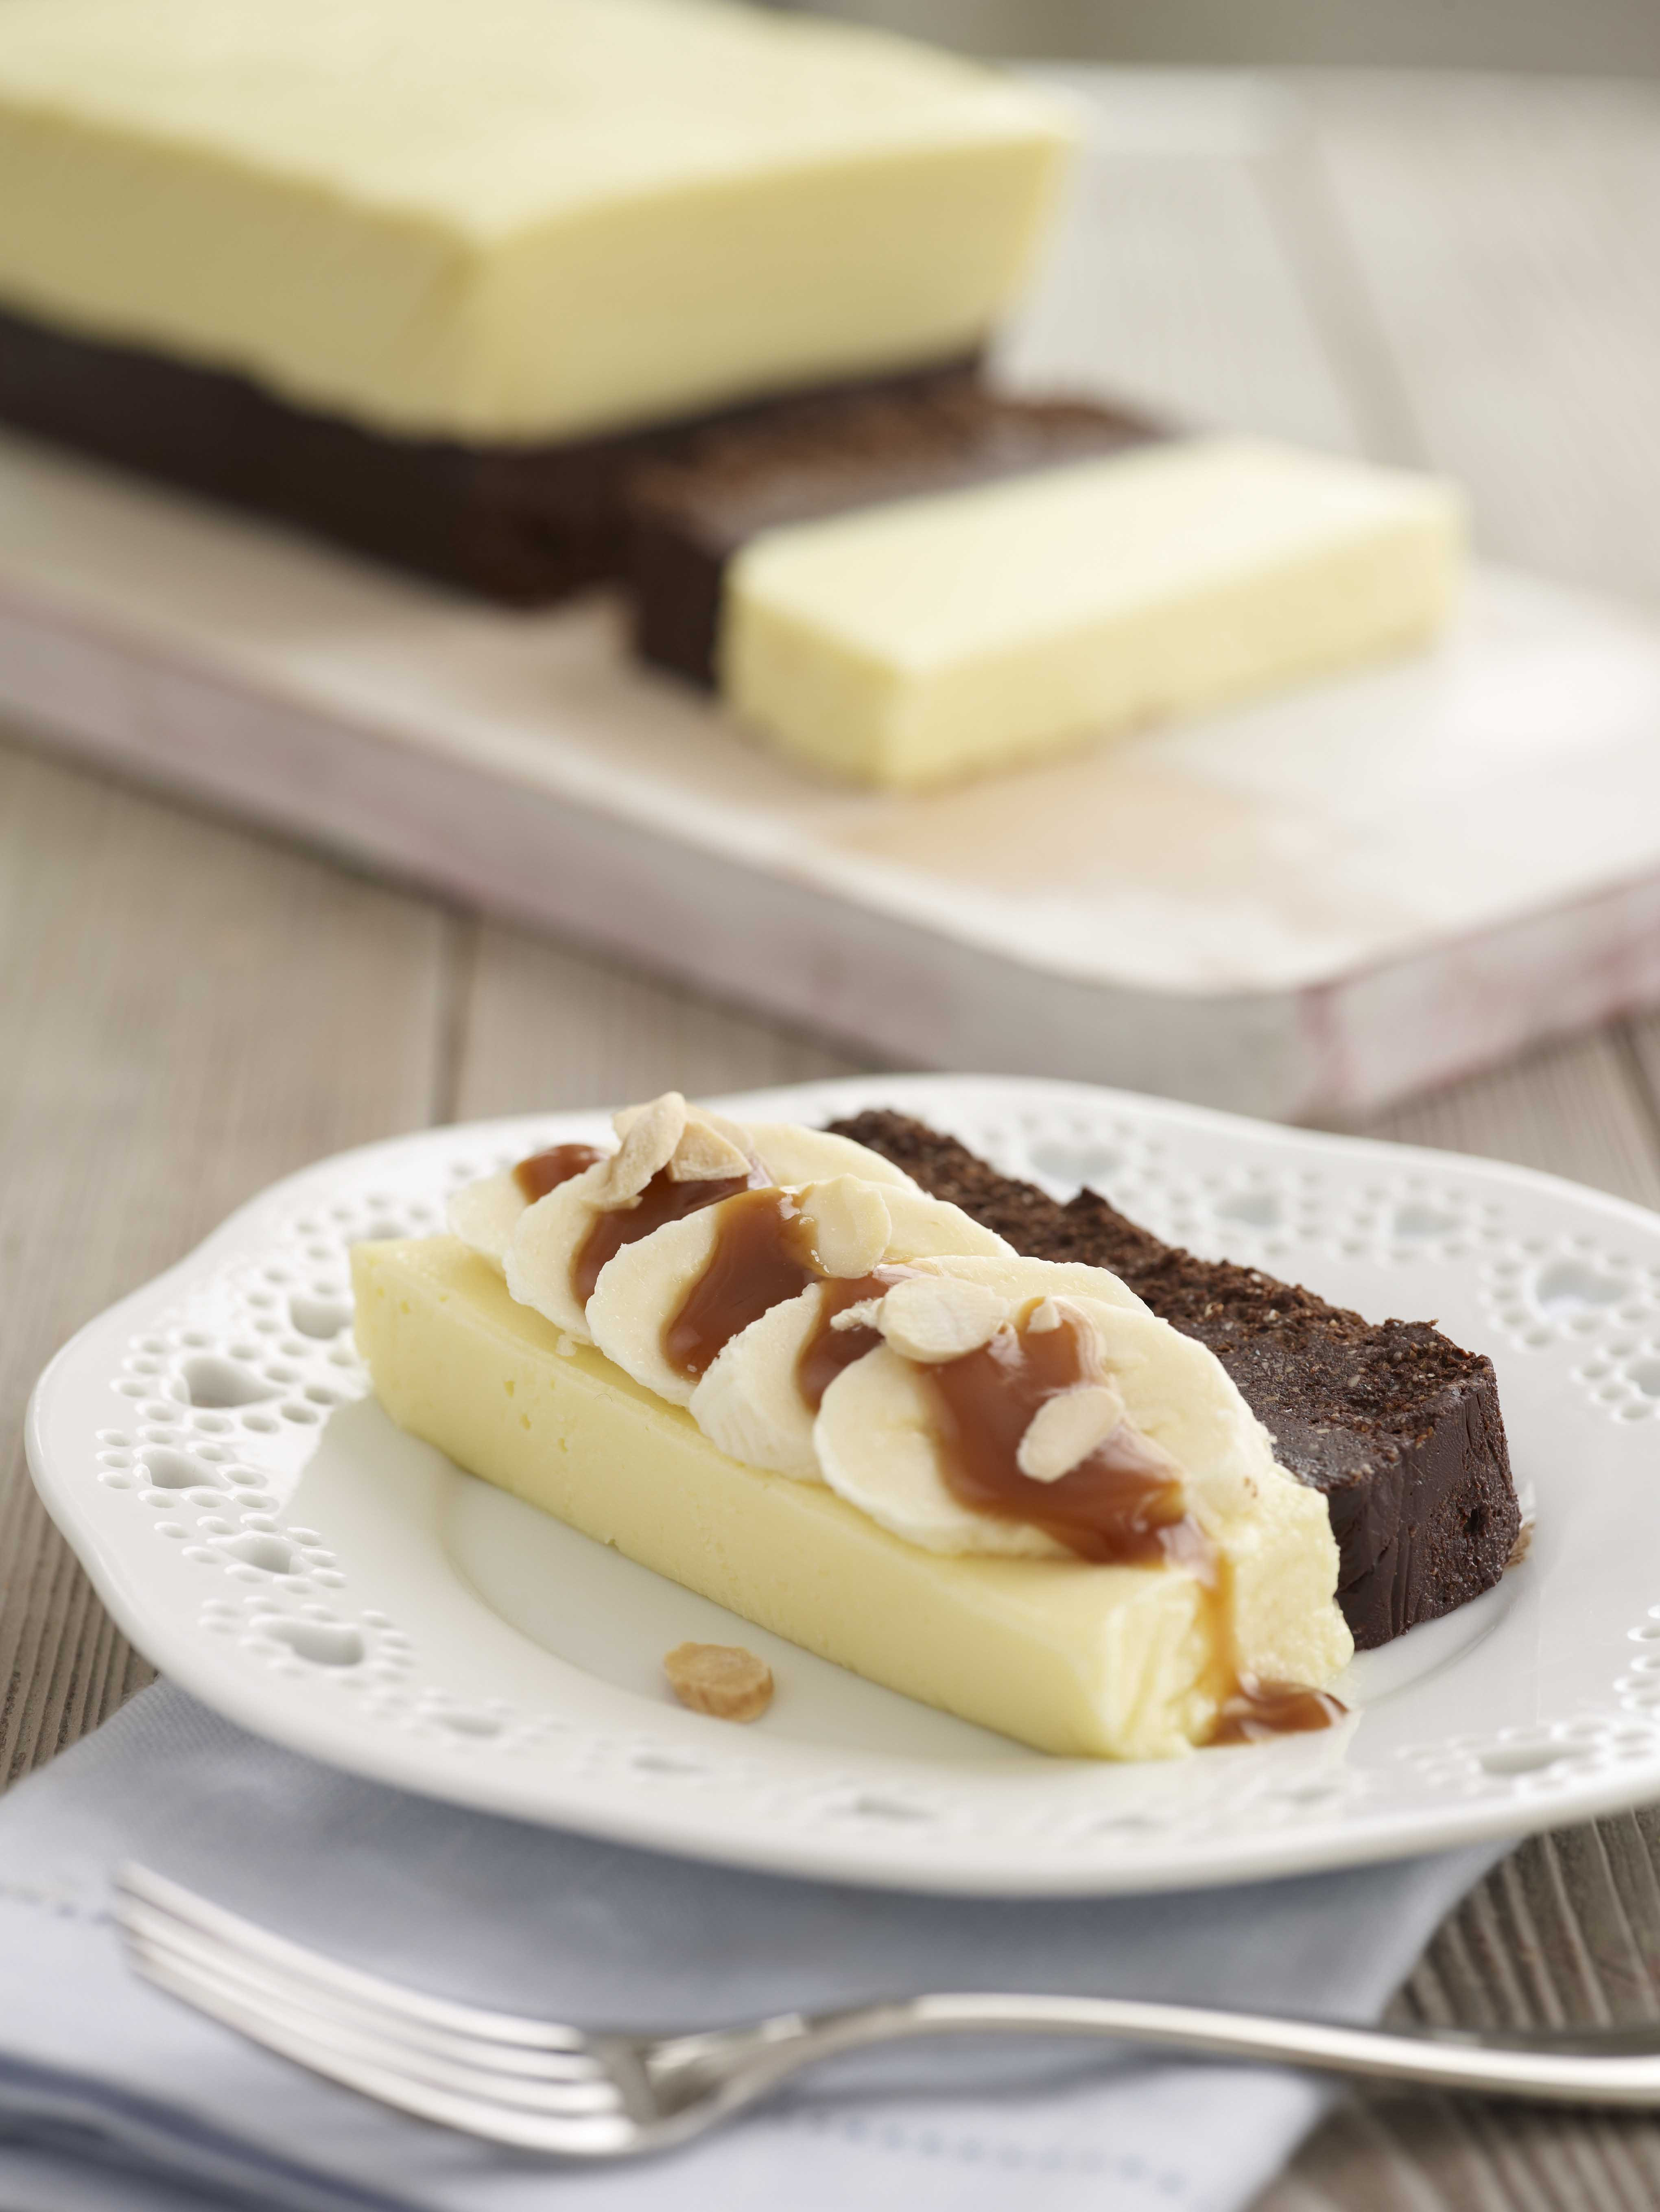 White Chocolate Desserts  White Chocolate and Praline Mousse with Sliced Bananas and